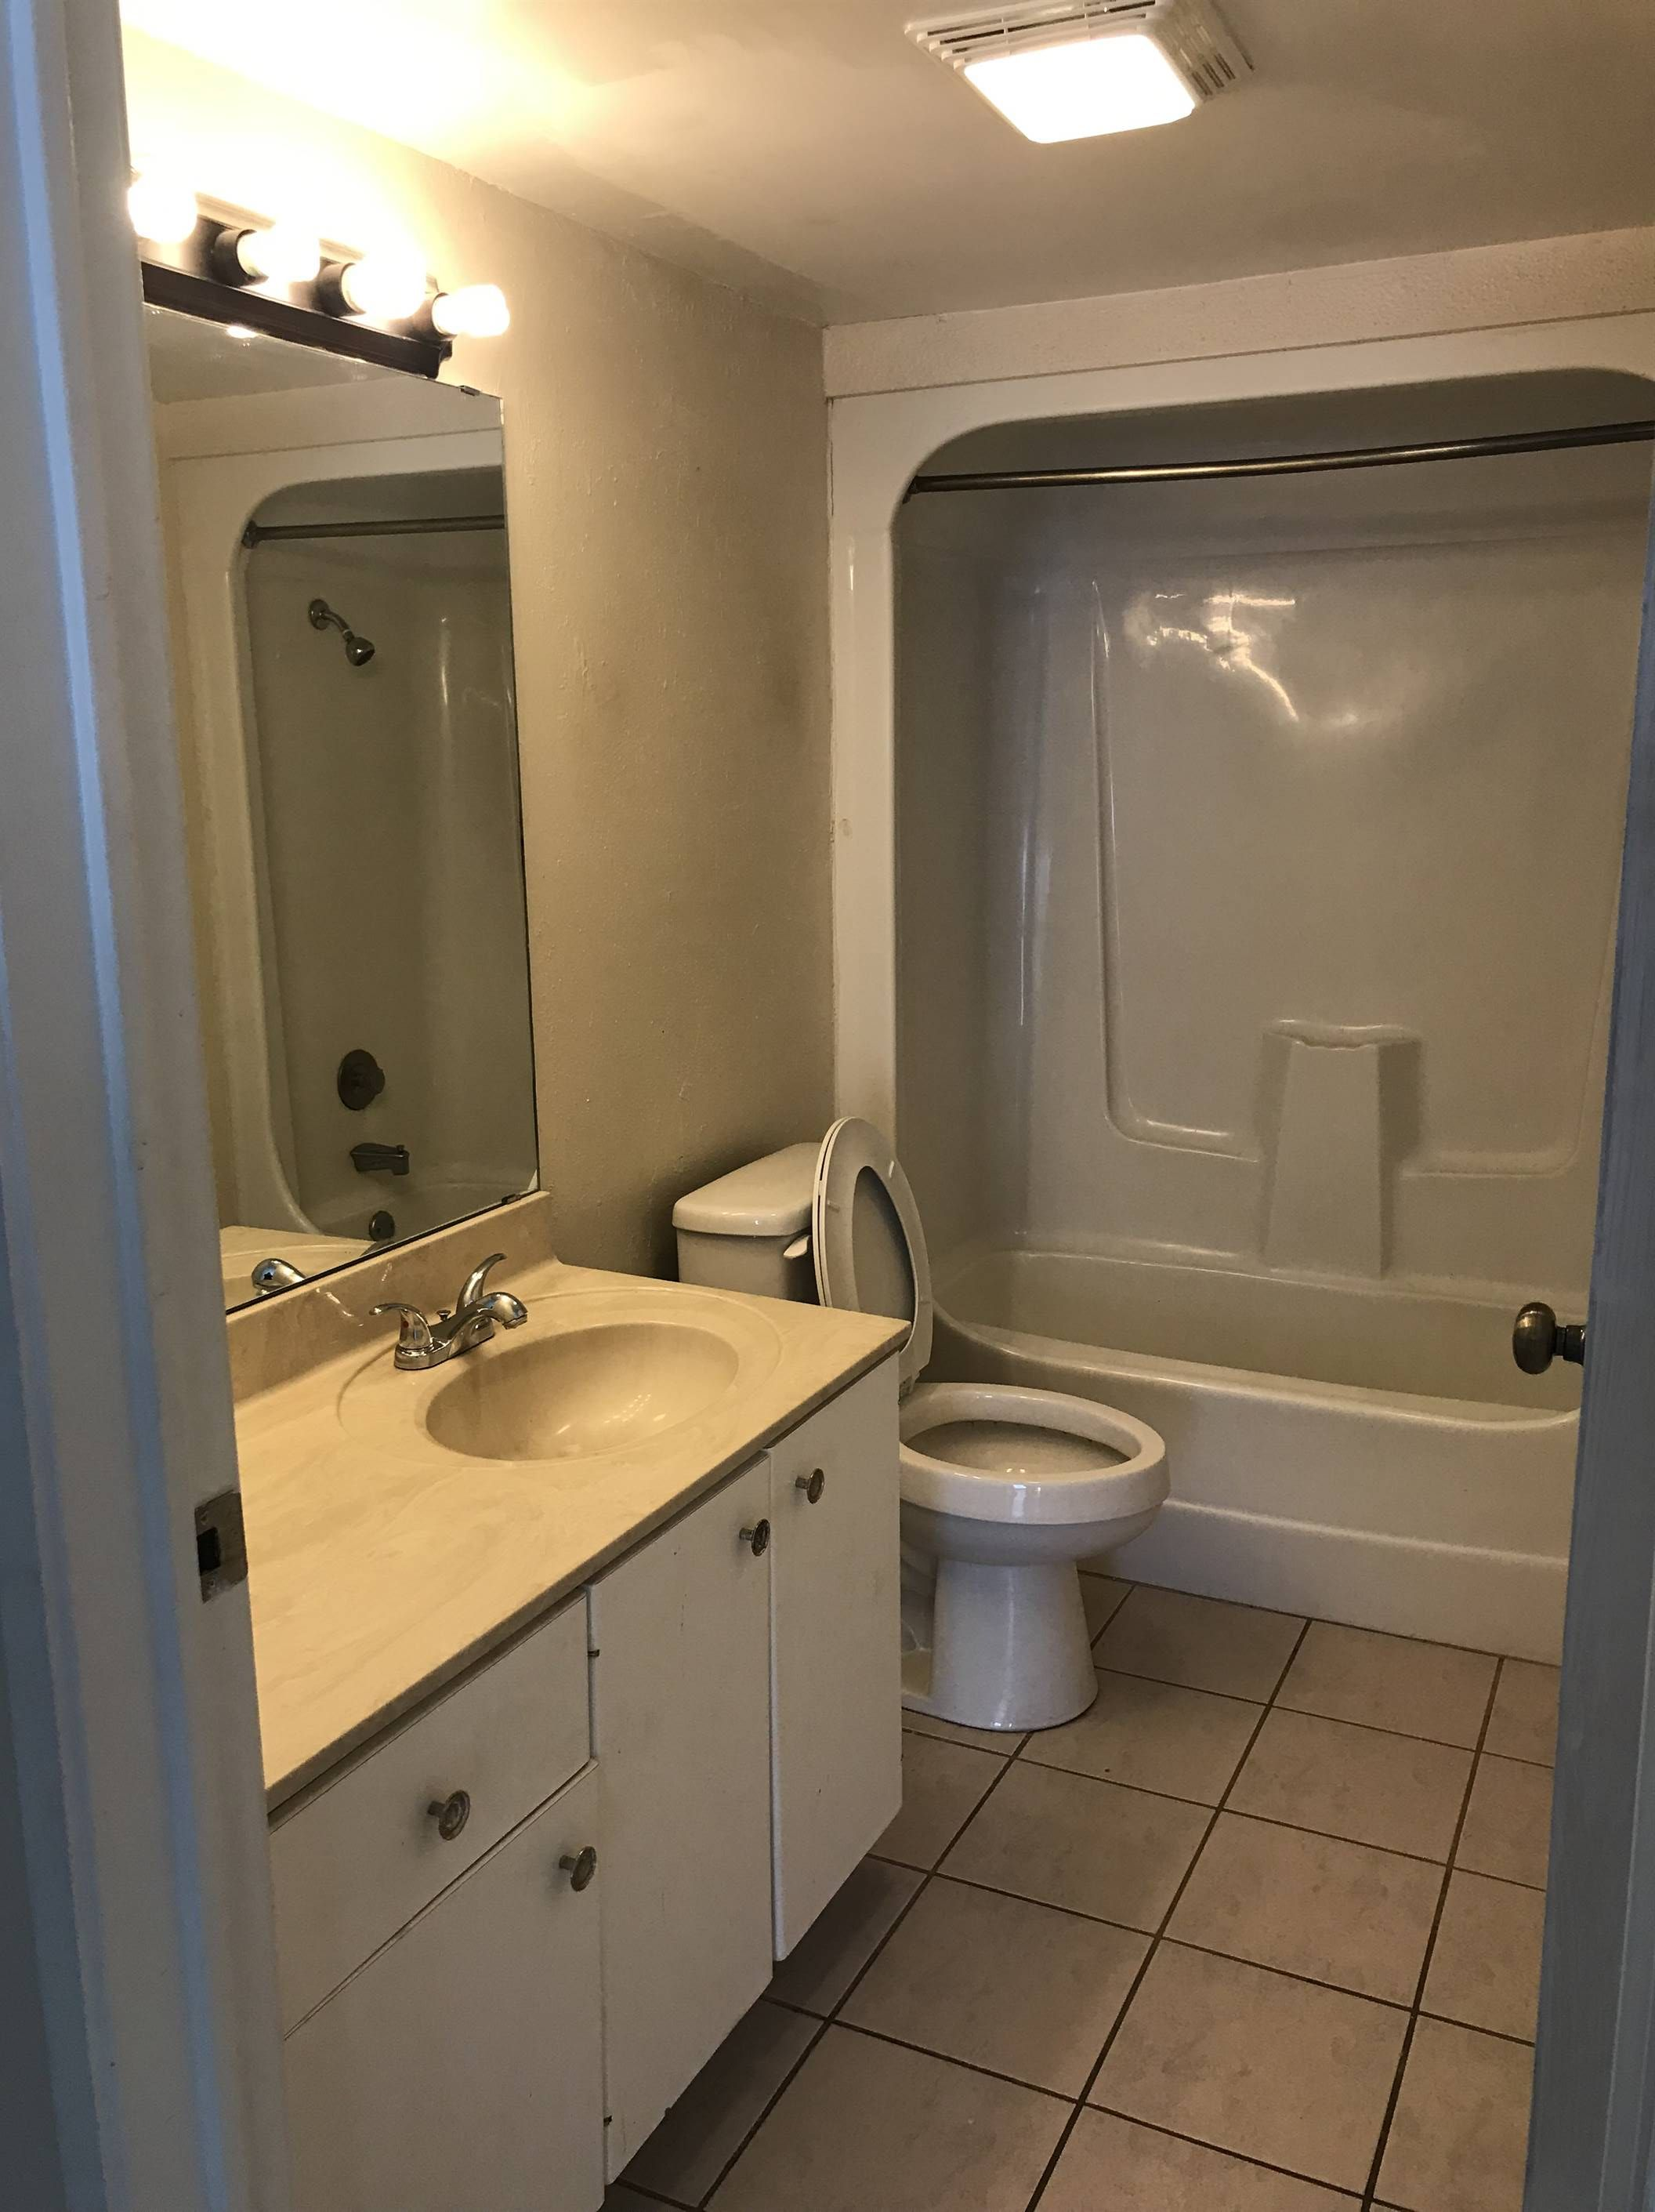 Newly Remodeled Two Bedrooms Two Bath Apartment Located At 915 S Seminole Drive Chattanooga Tn Bath Apartments Chattanooga Apartment One Bedroom Apartment